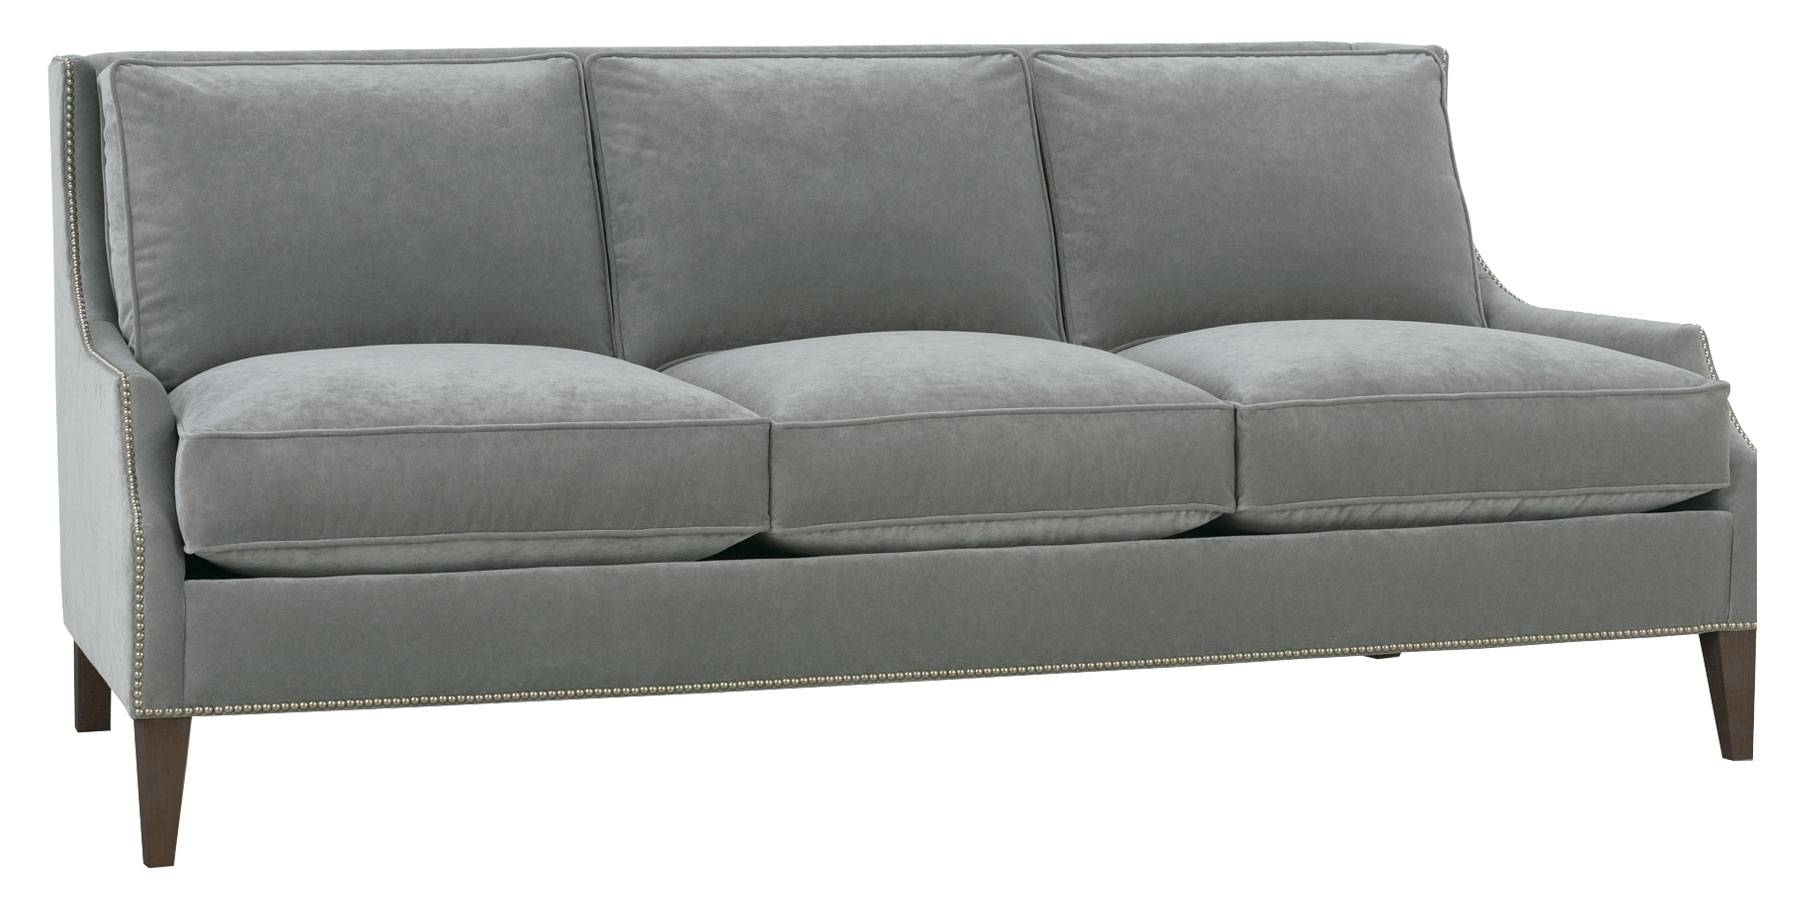 Sofas Center : Apartment Size Sectional Sofa Sleepers Modern Set Regarding Apartment Sofa Sectional (Image 25 of 30)